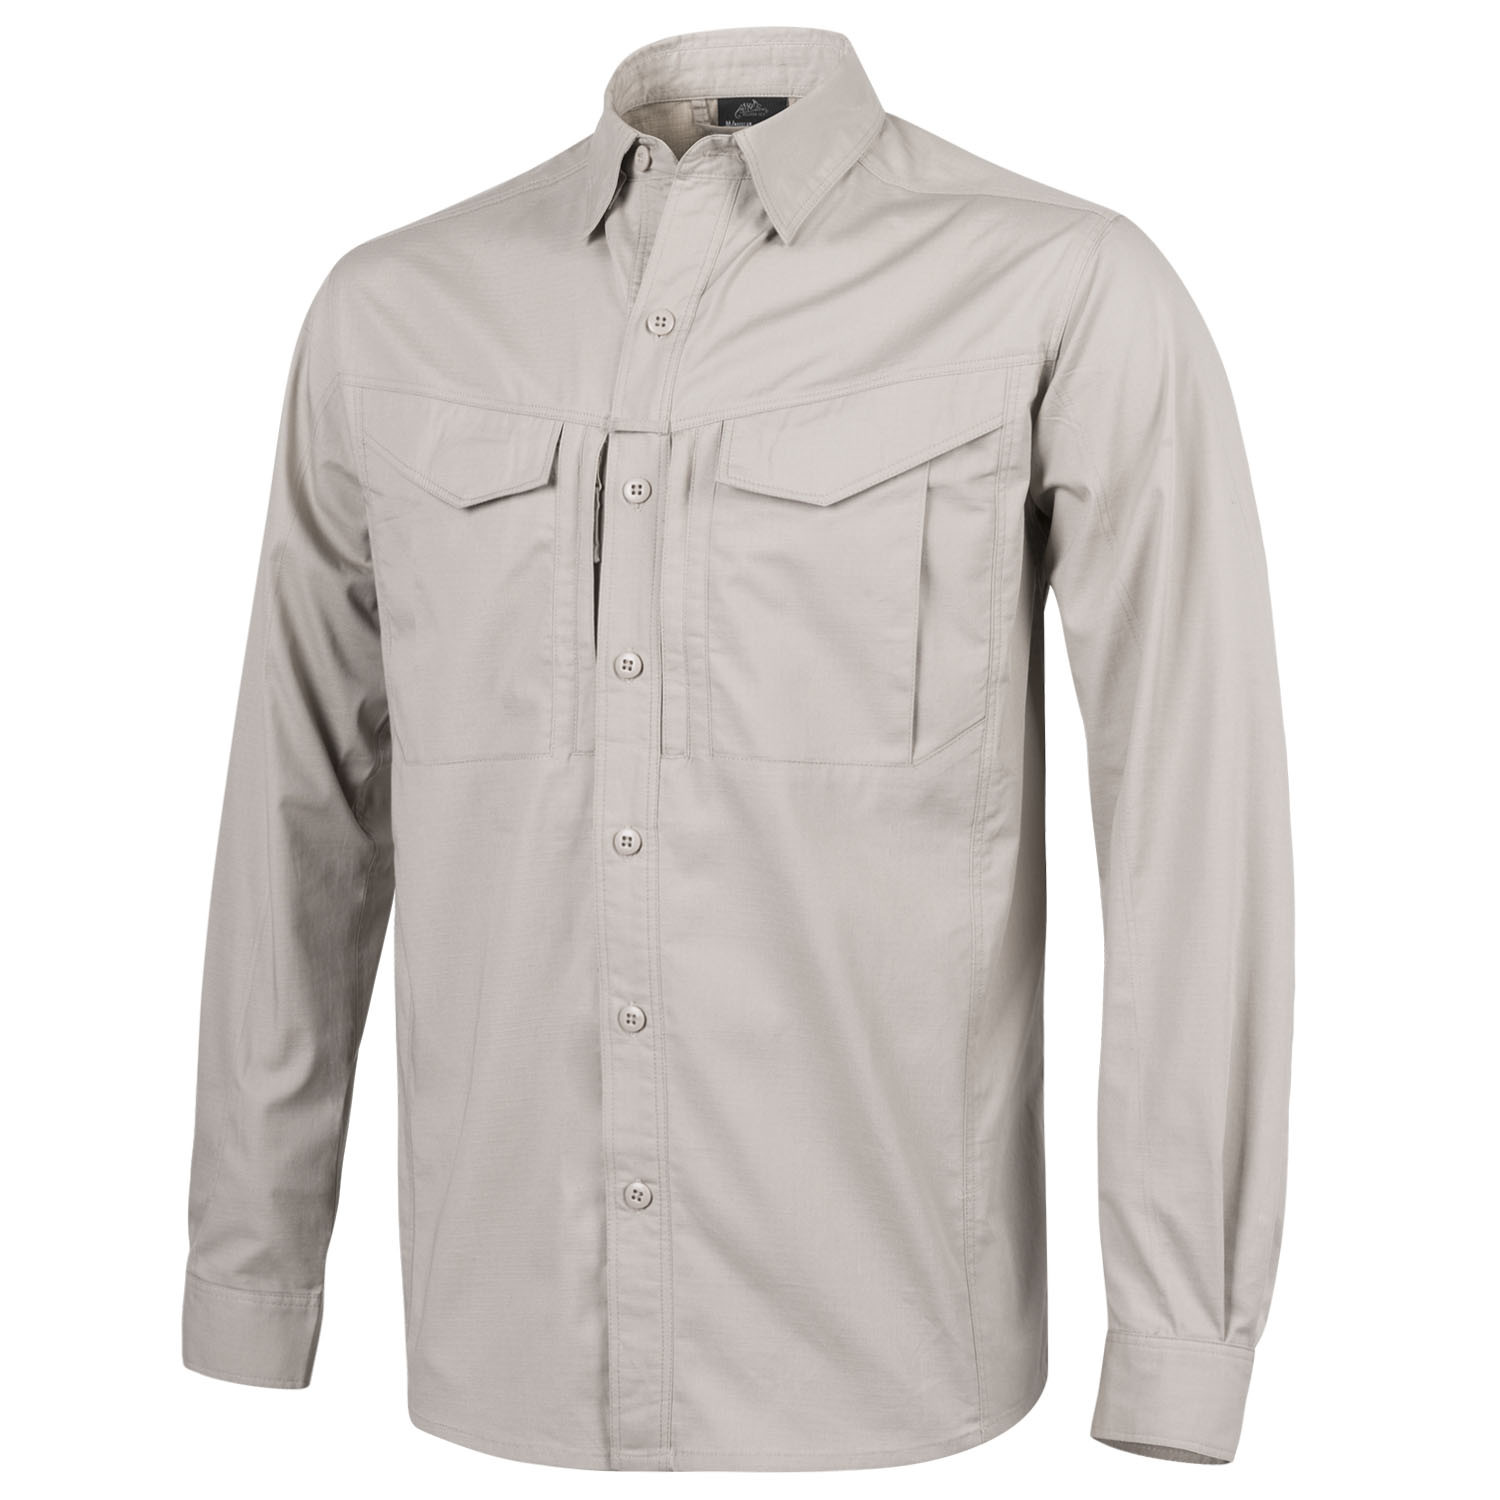 DEFENDER Mk2 Shirt long sleeve® - PolyCotton Ripstop